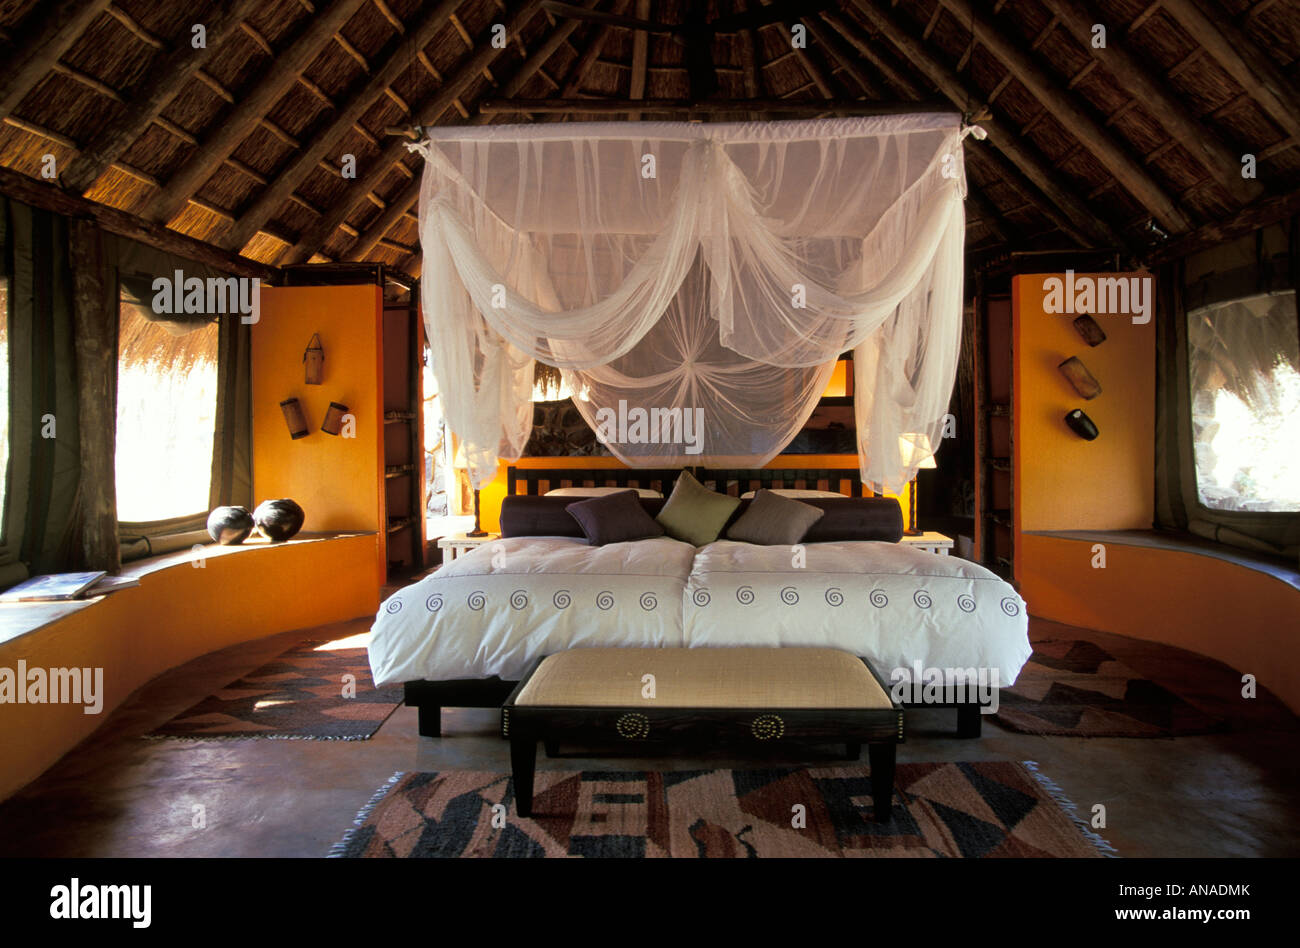 One of the bedrooms at Jaci's Lodge, furnished with a four poster canopy bed with a draped mosquito net - Stock Image